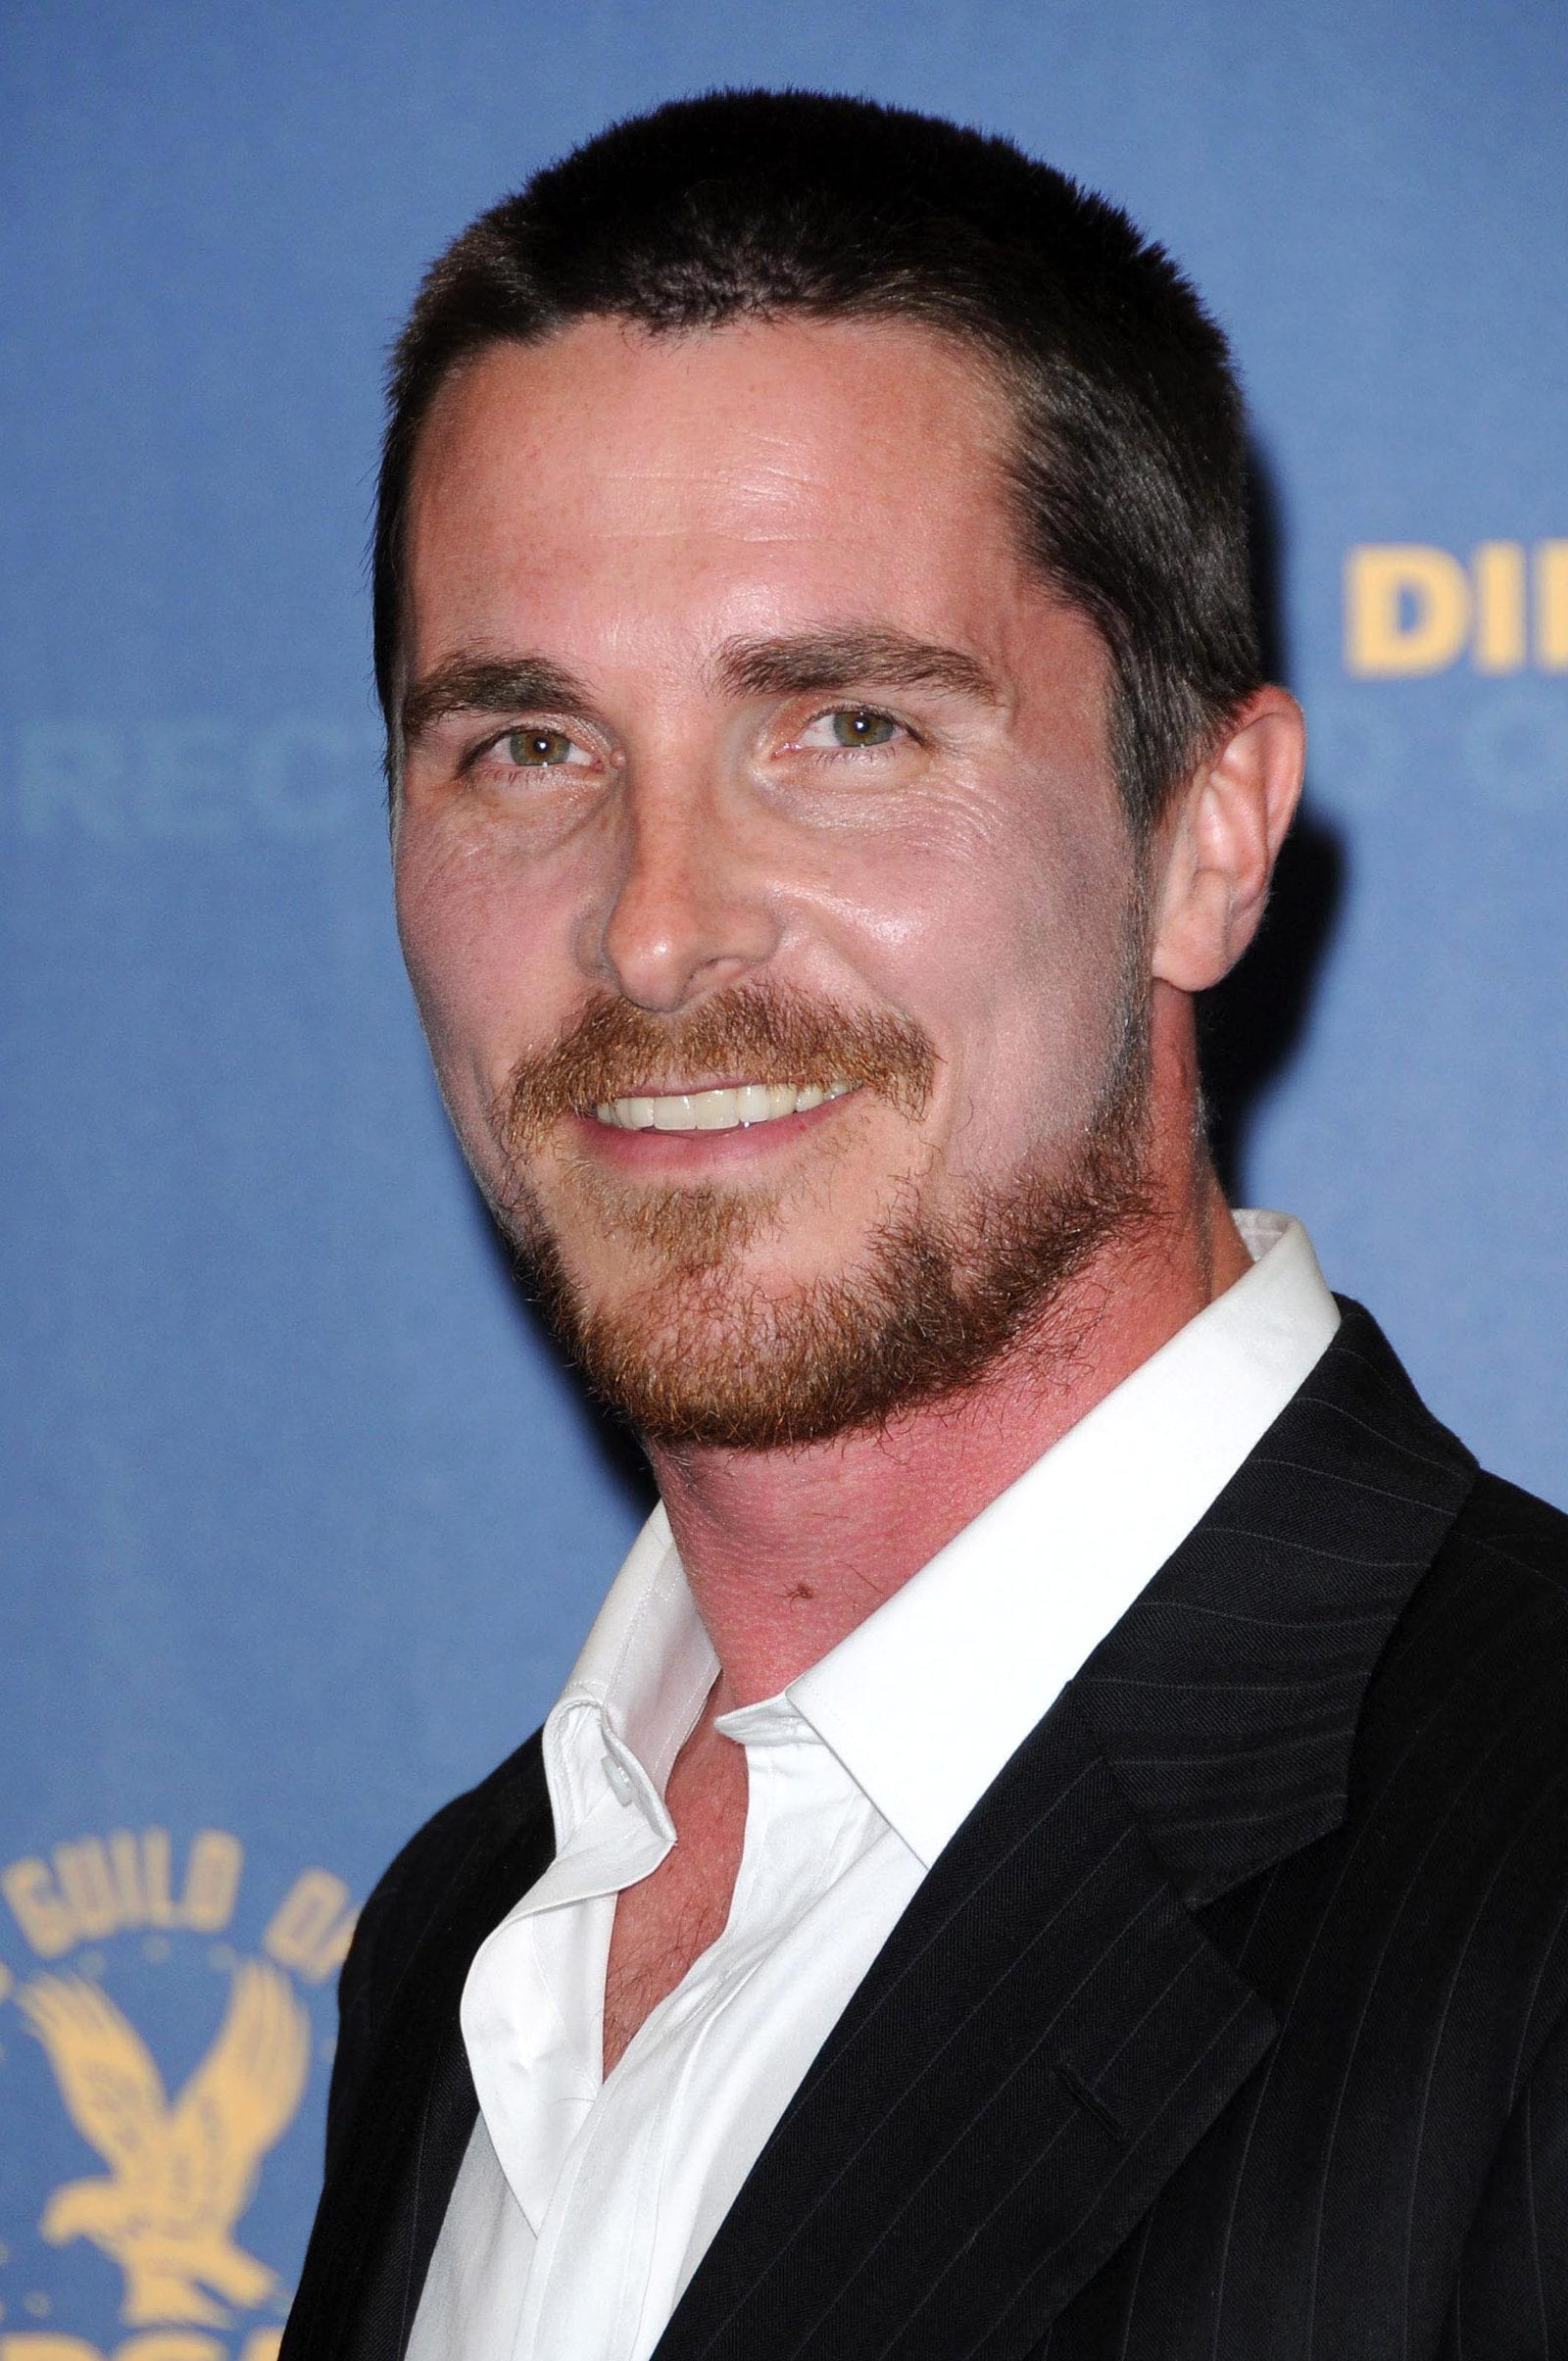 Christian bale crew cut for receding hairline